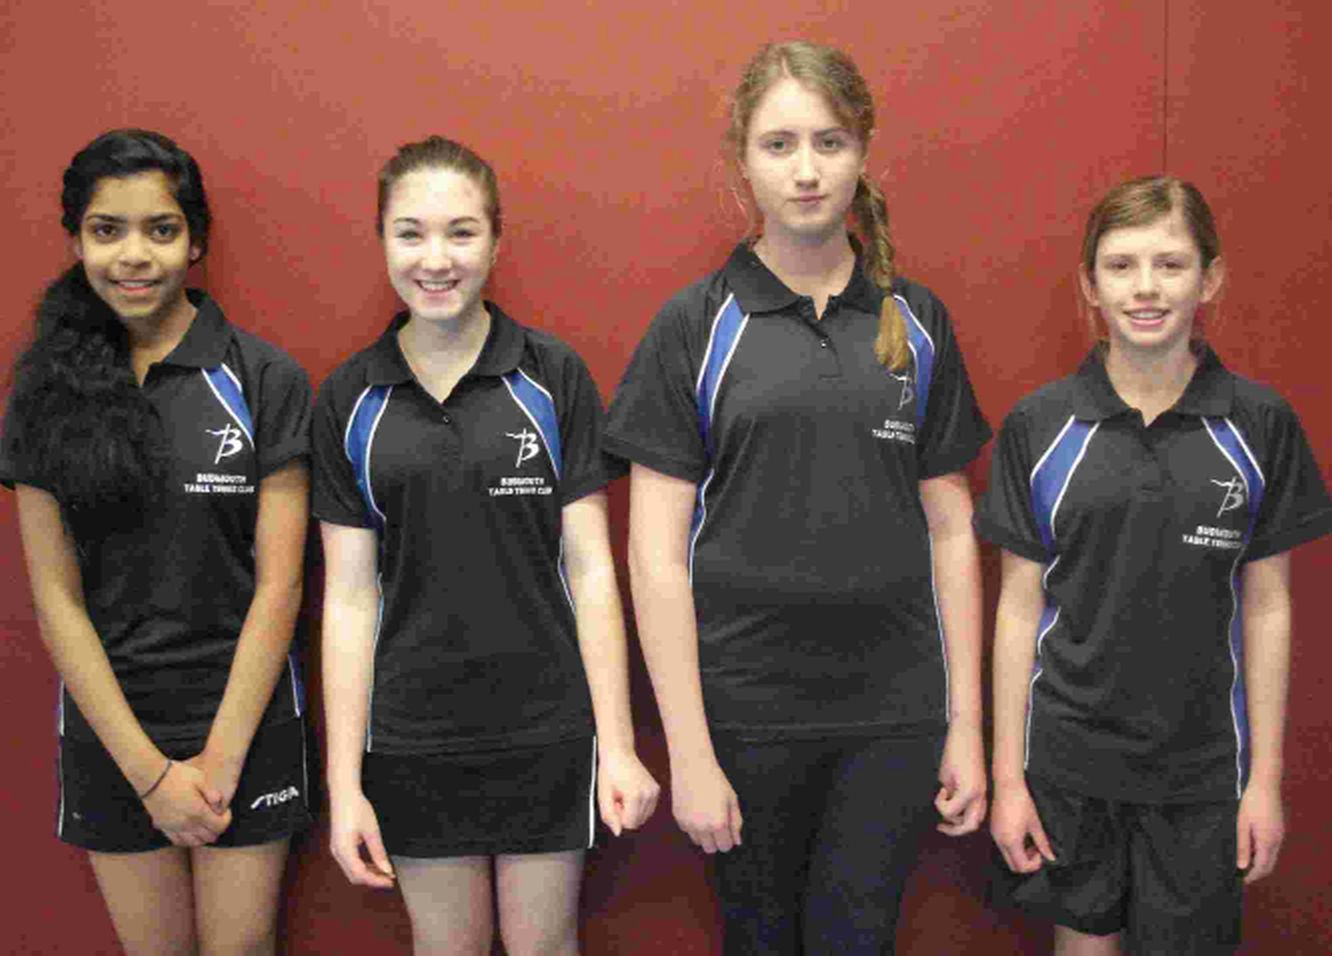 BUDDING TALENTS: Snigdha Maganti, Lily Cherry, Erin Stow and Harriet Pullen